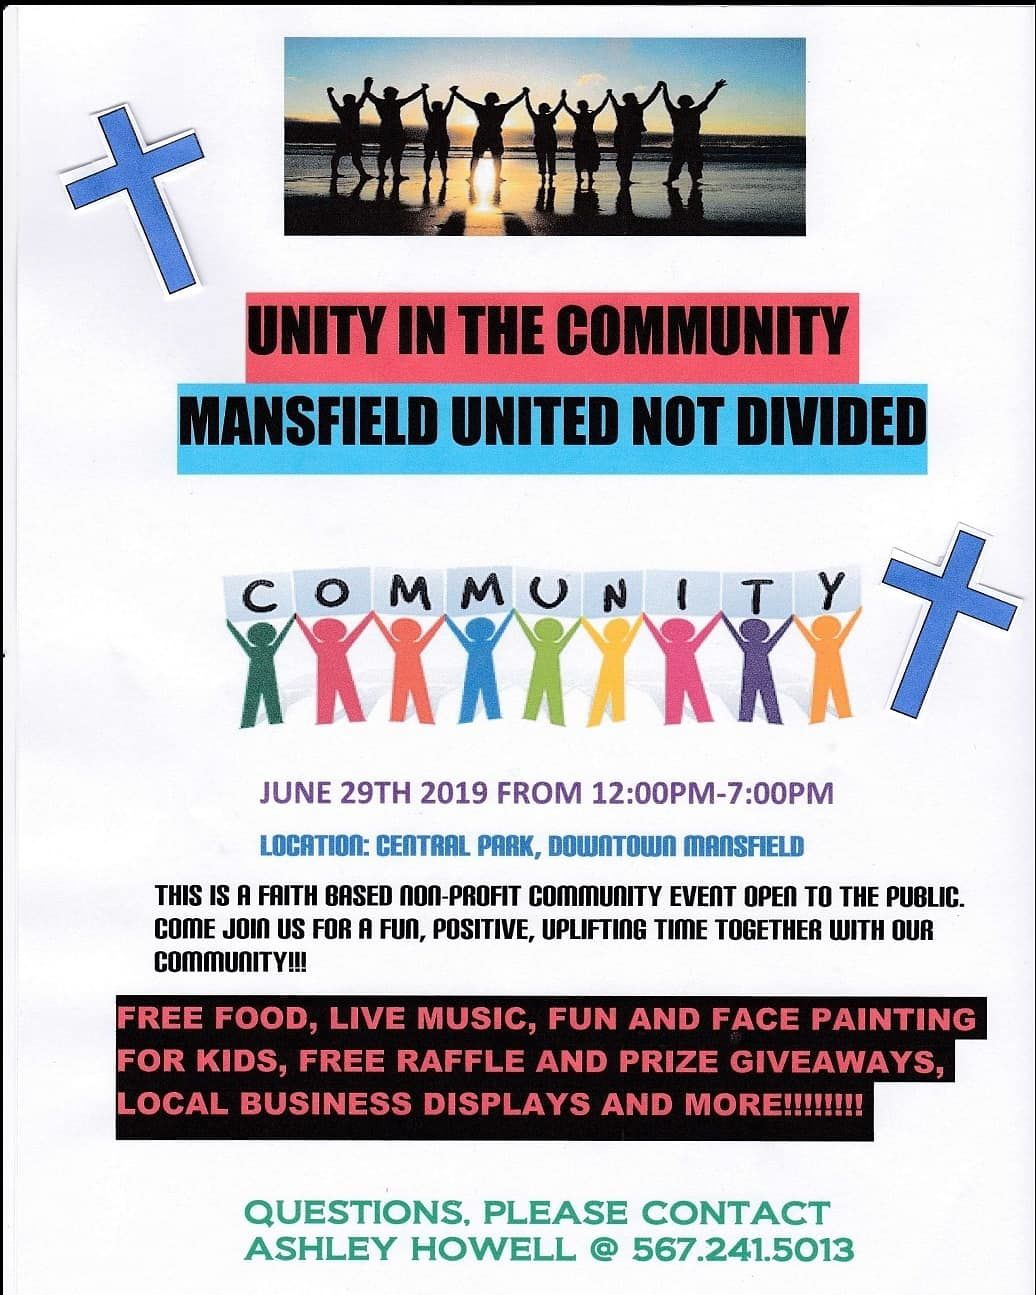 Unity in the Community event set for June 29 in Mansfield